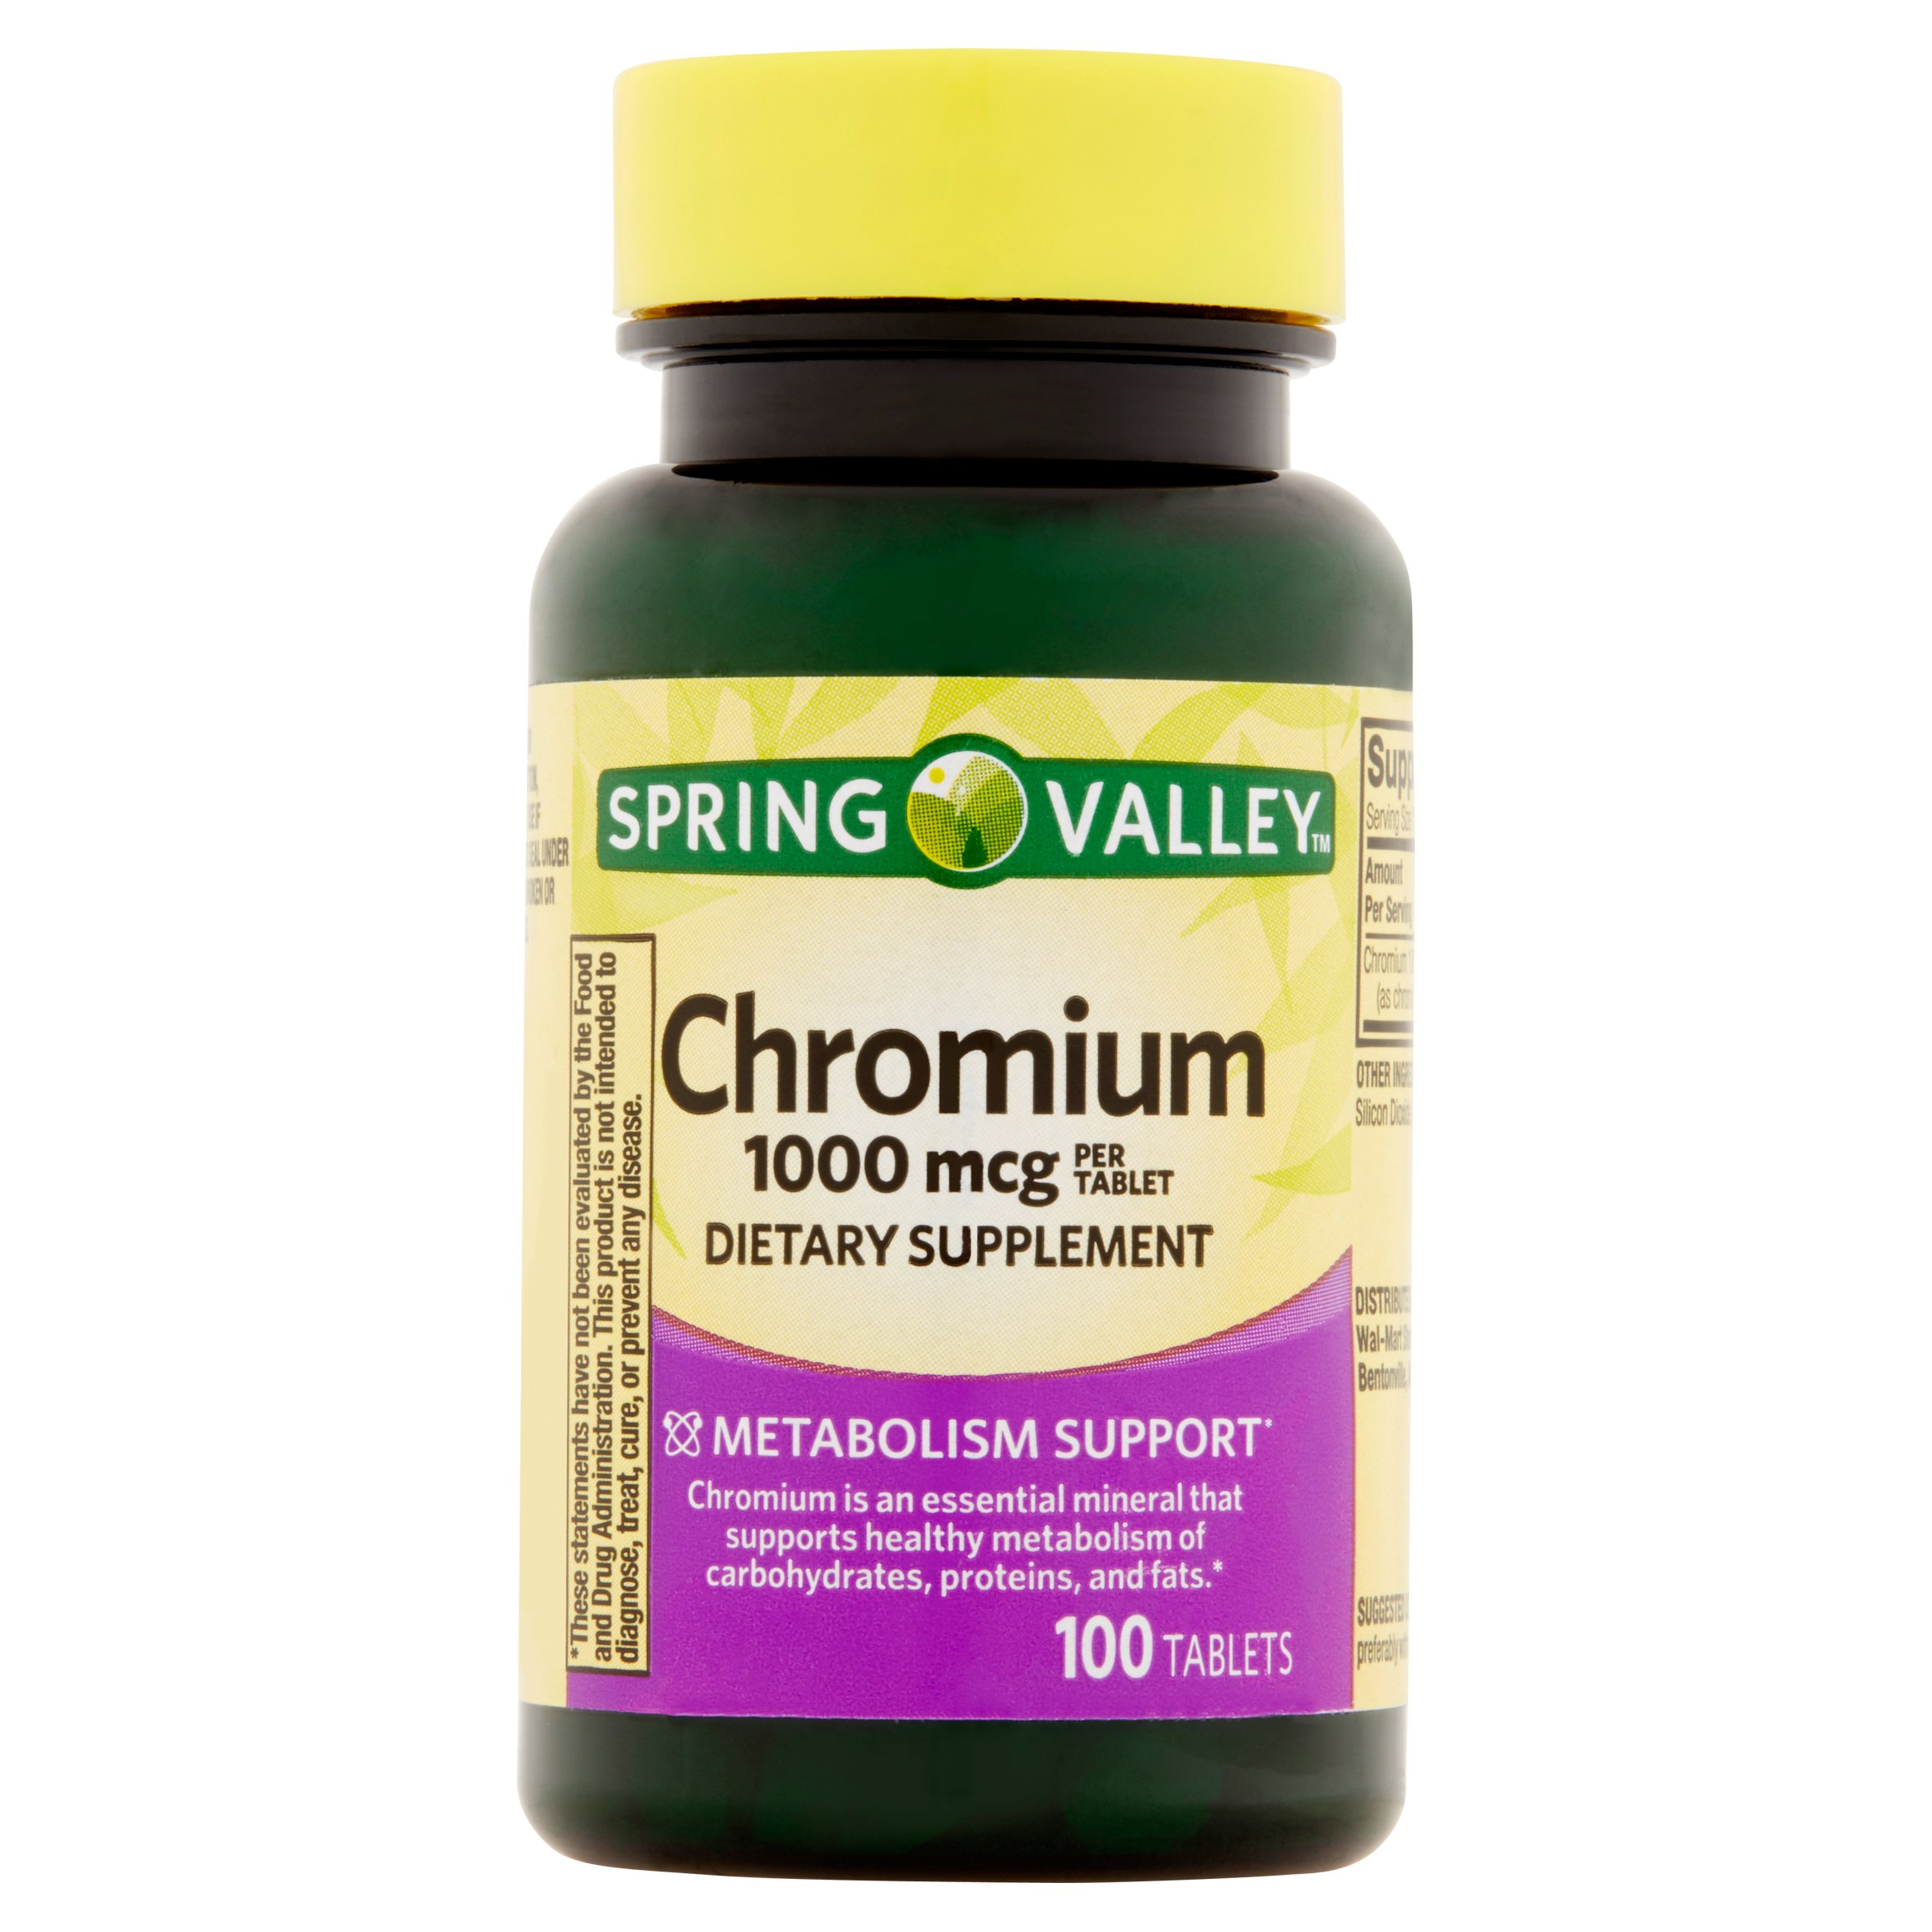 Spring Valley Chromium Tablets, 1000 mcg, 100 Ct